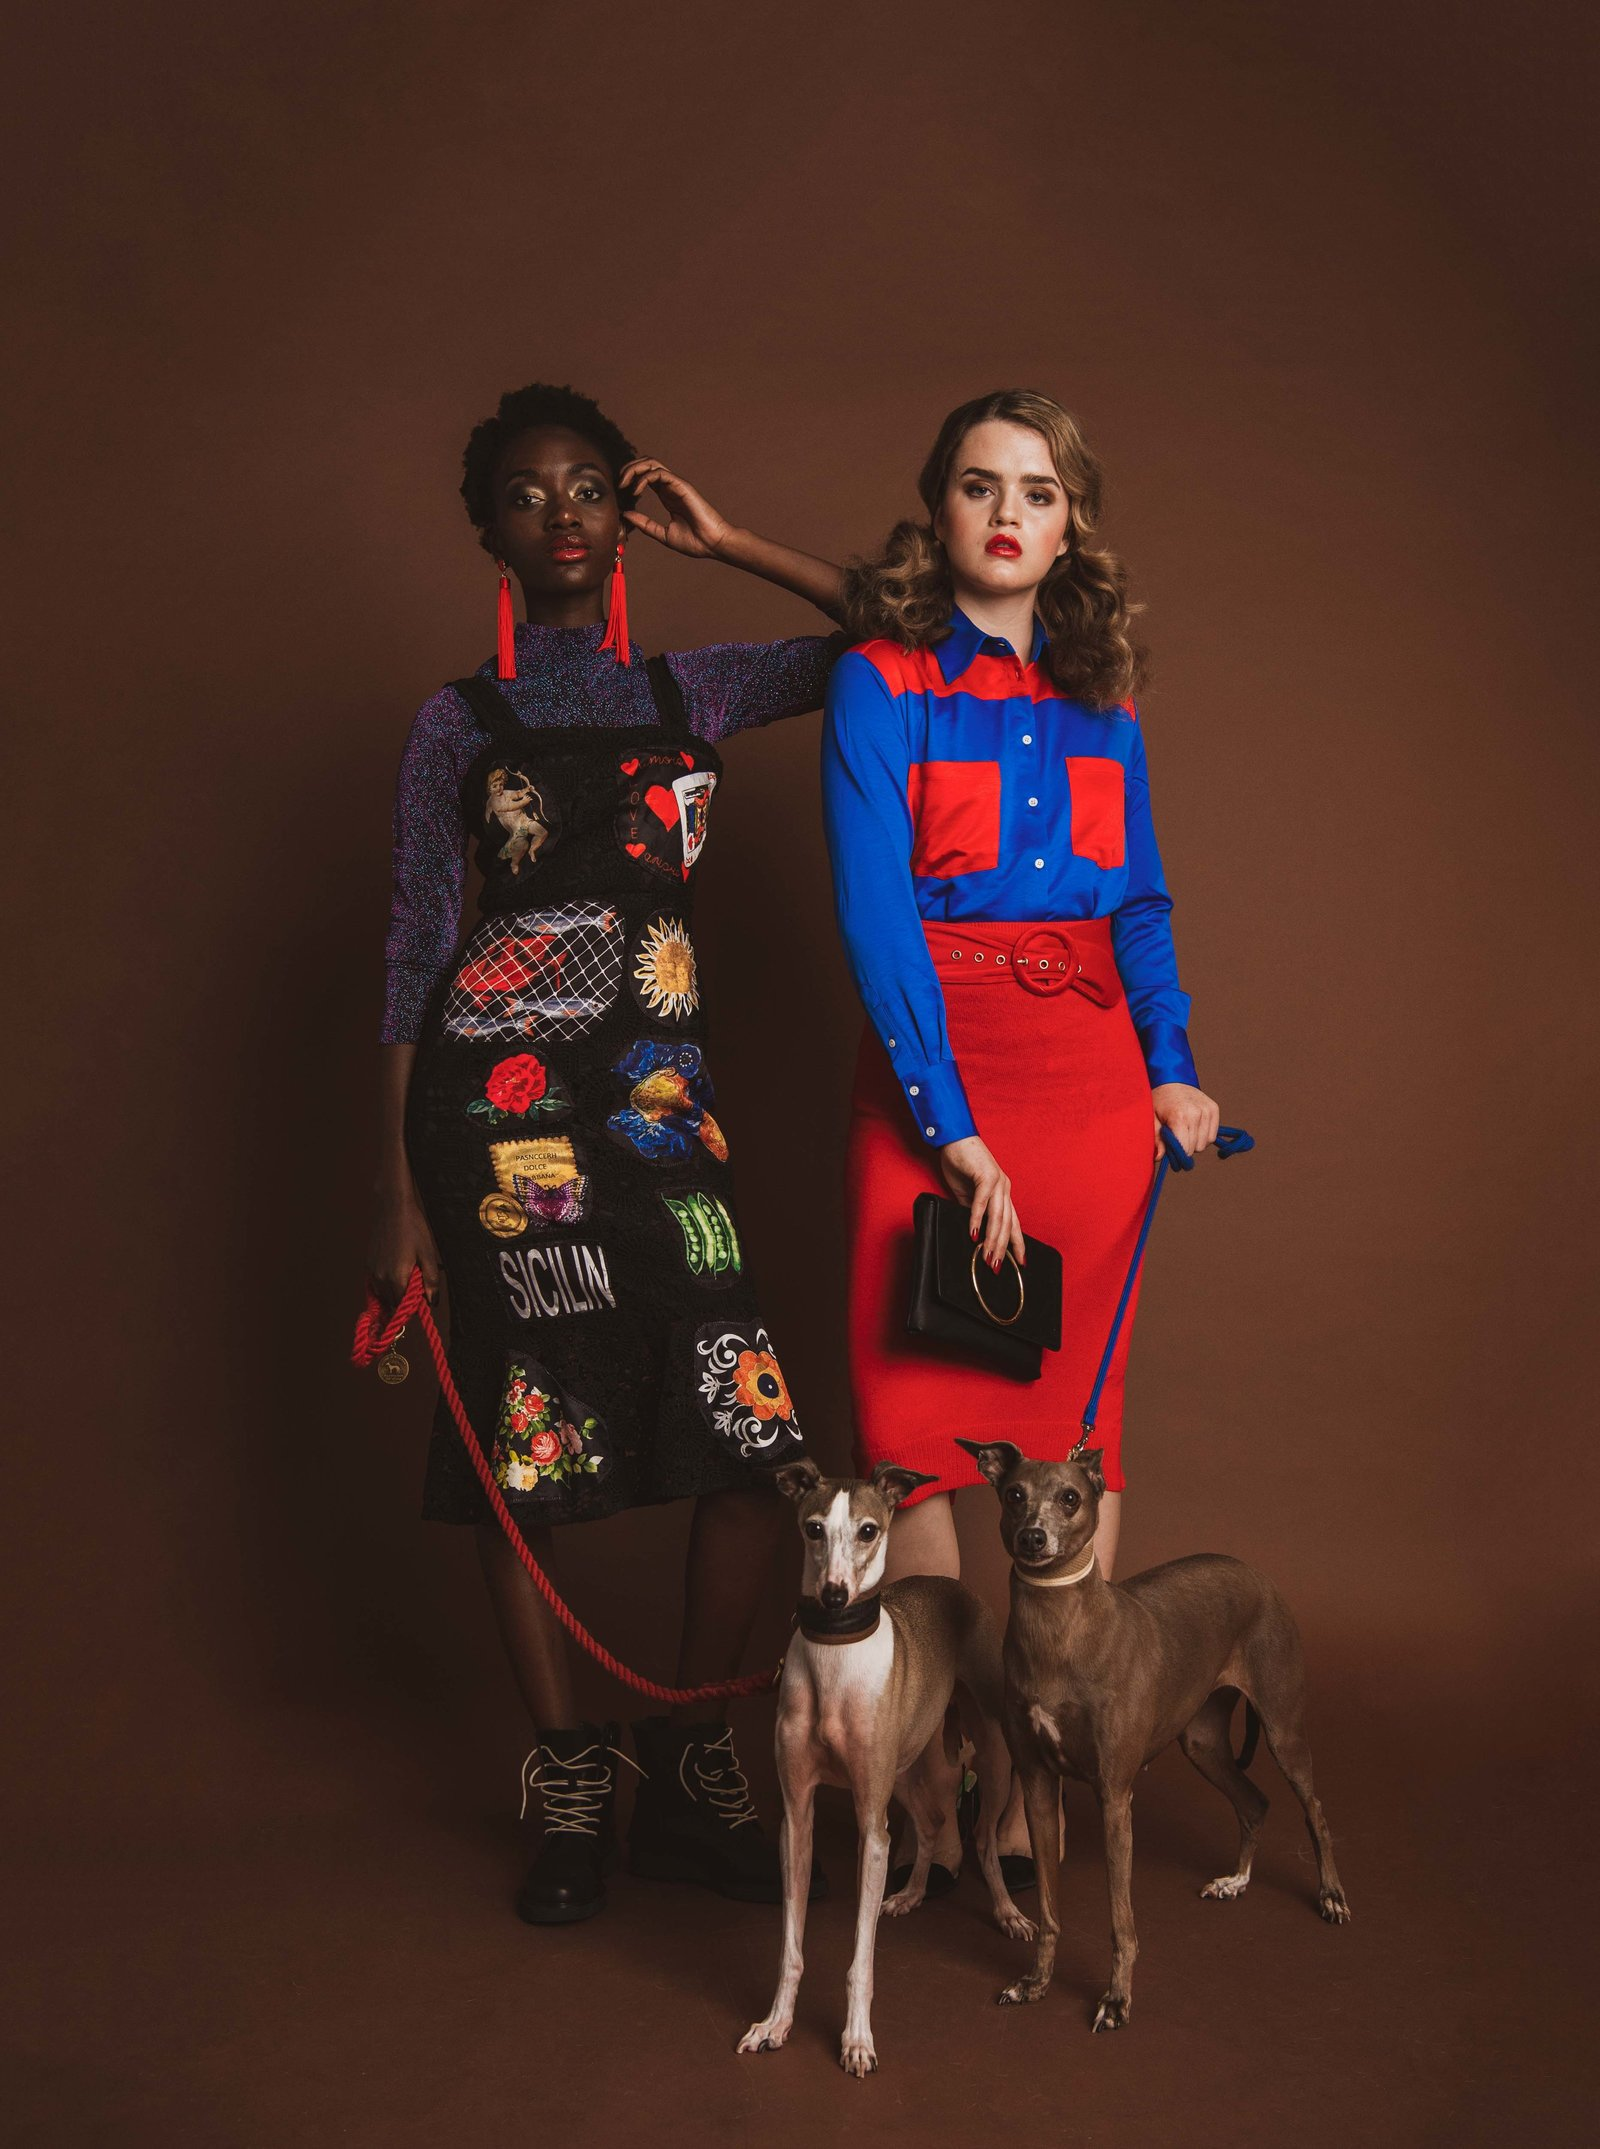 Dog-Fashion-Editorial-by-Brittany-Gawley-Photography-Westboro-Studio-18